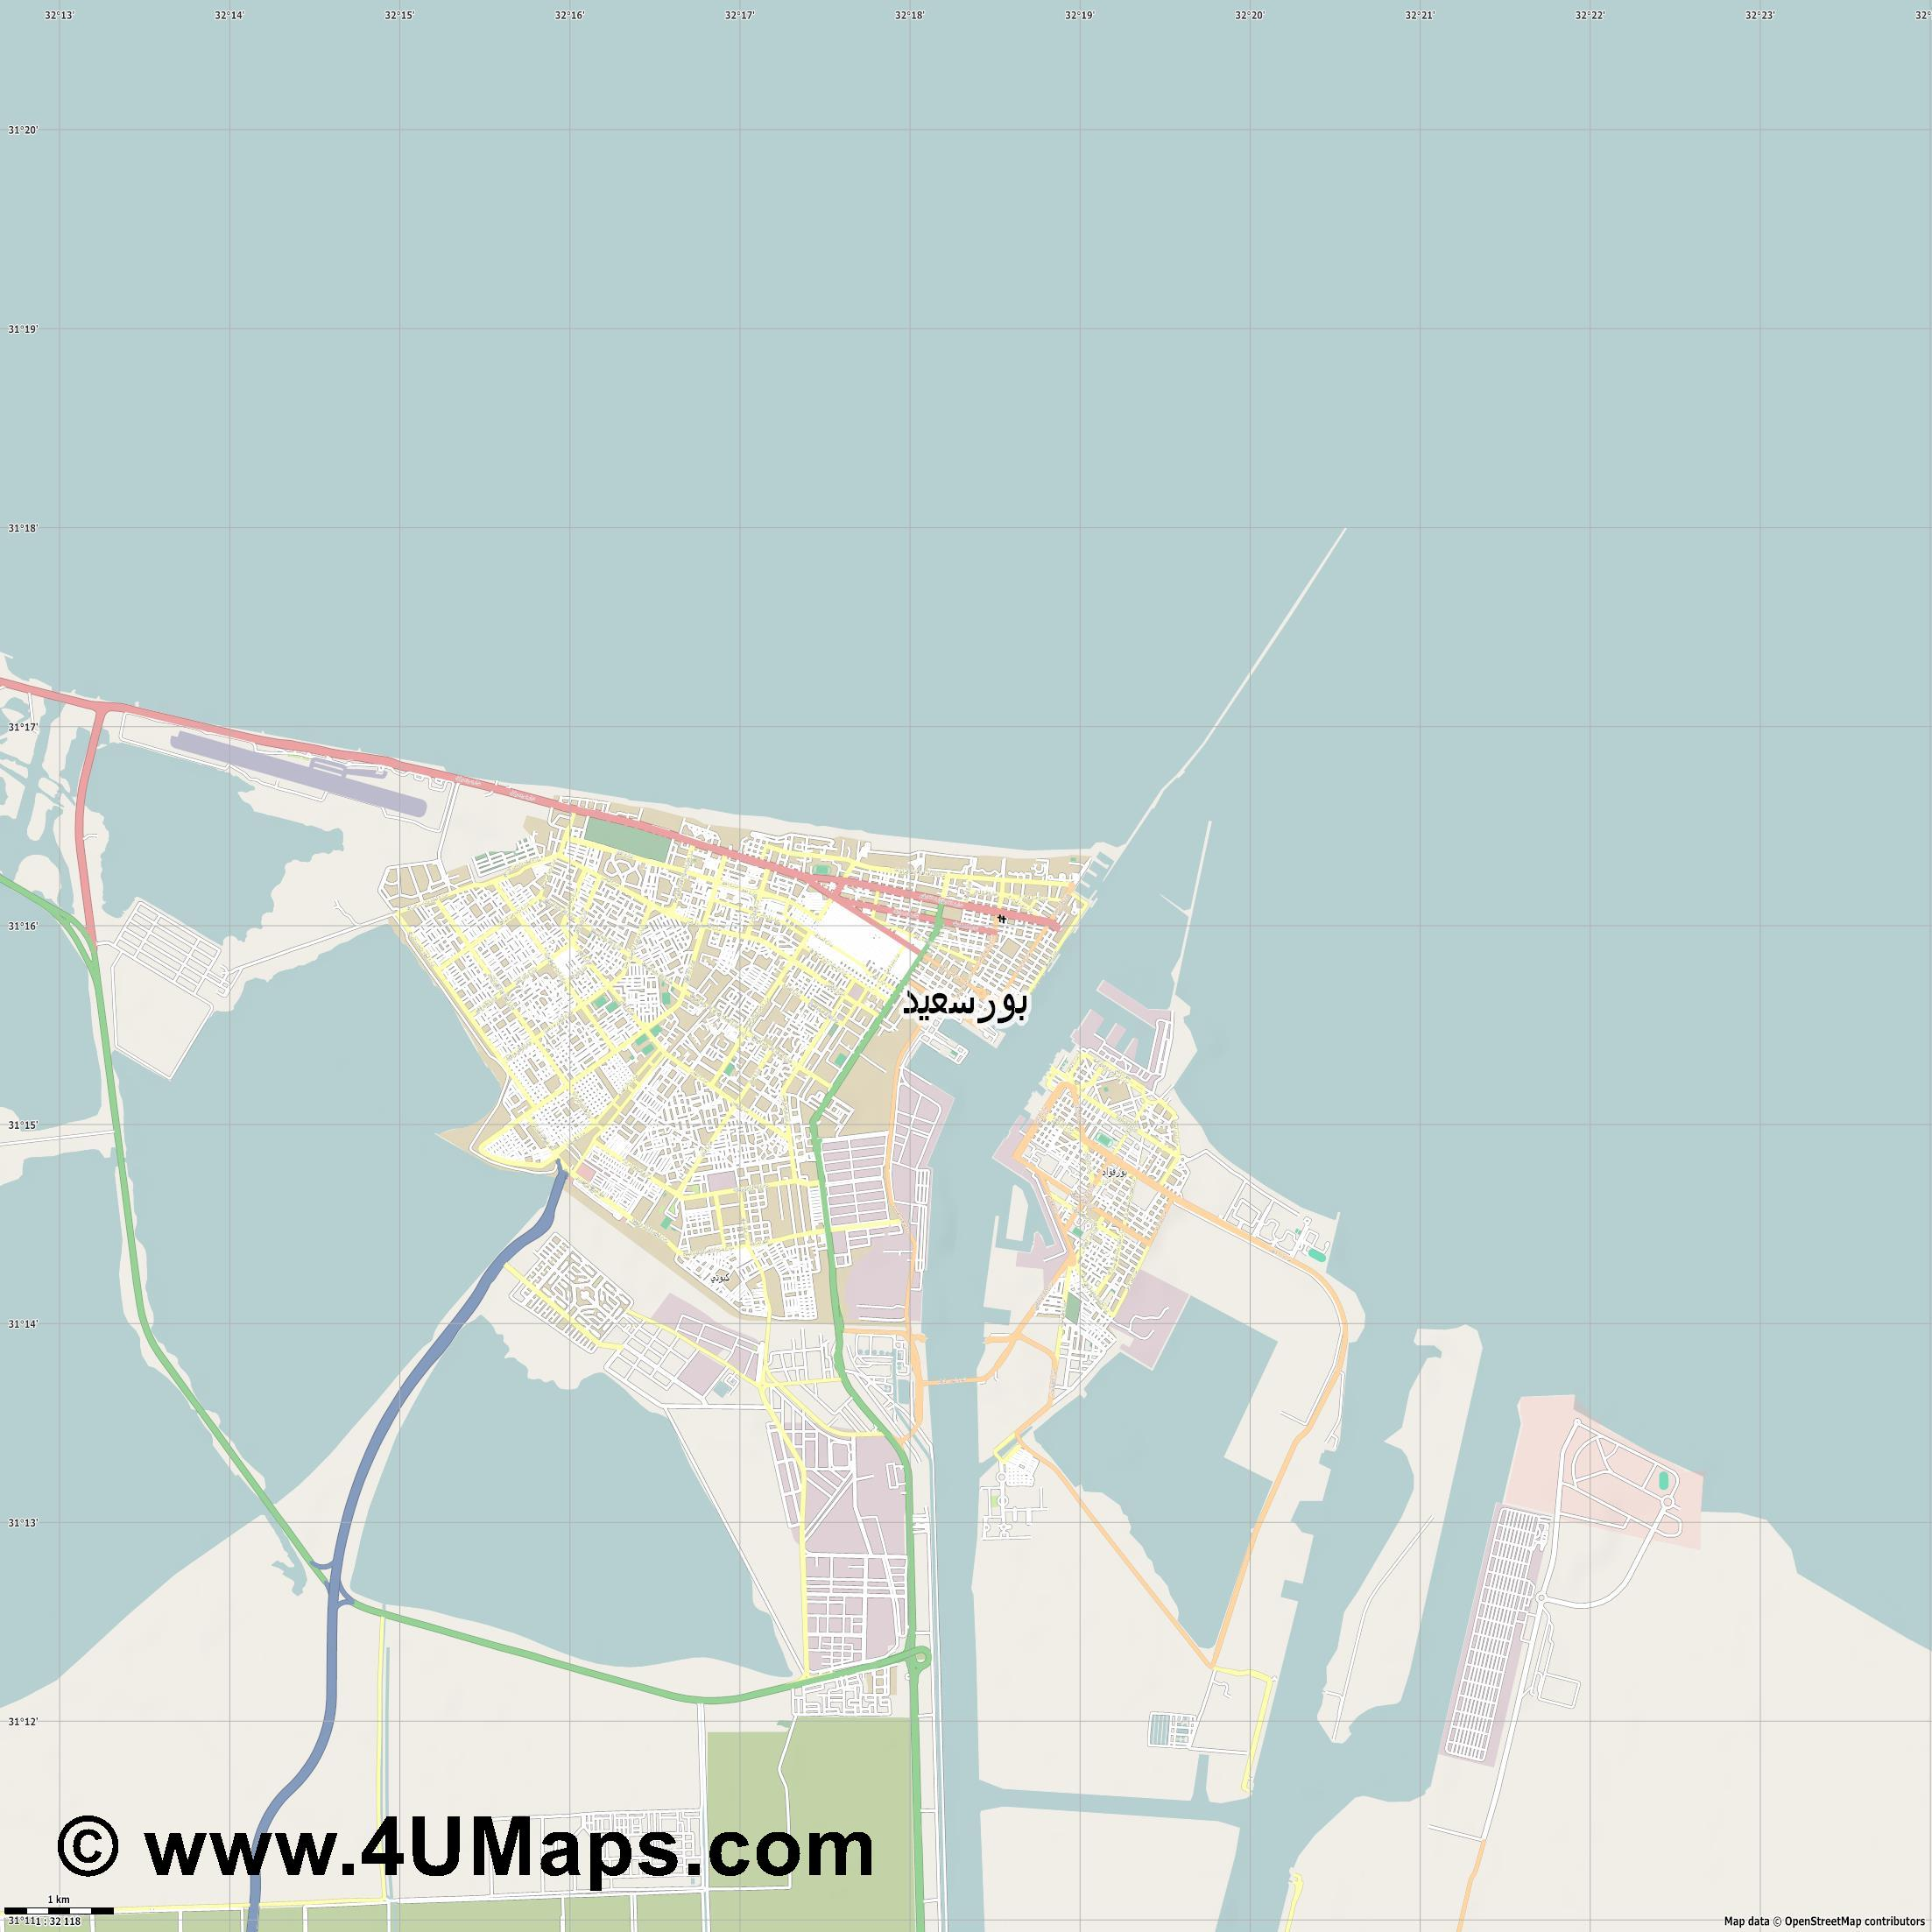 بور سعيد Port Said Port Saïd  jpg high detail, large area preview vector city map